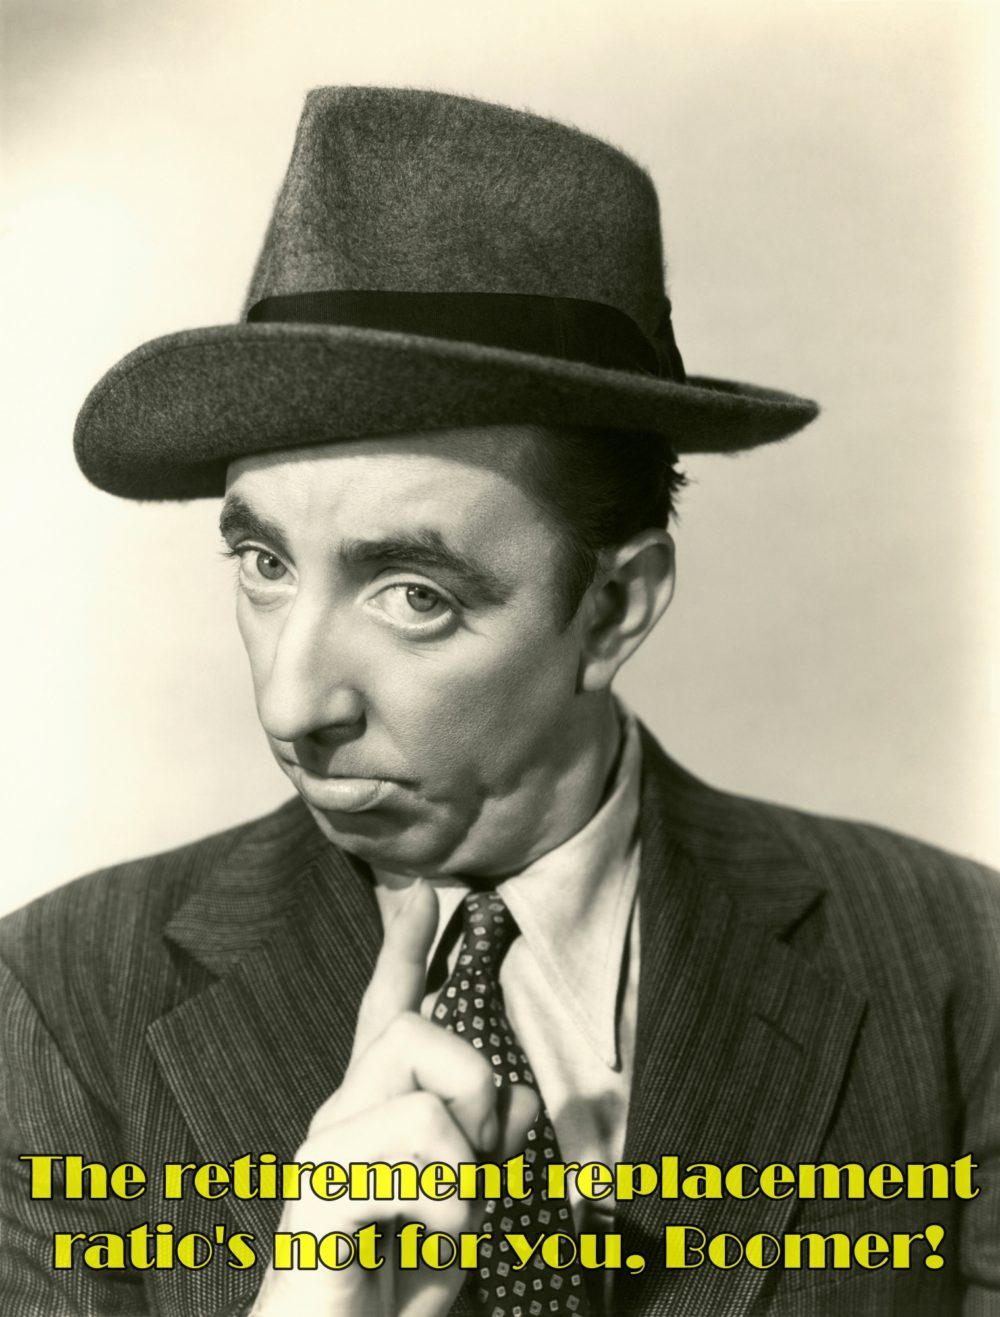 Retro black and white photo of man in suit and hat pointing his finger in warning to viewer not to rely on the retirement replacement ratio.